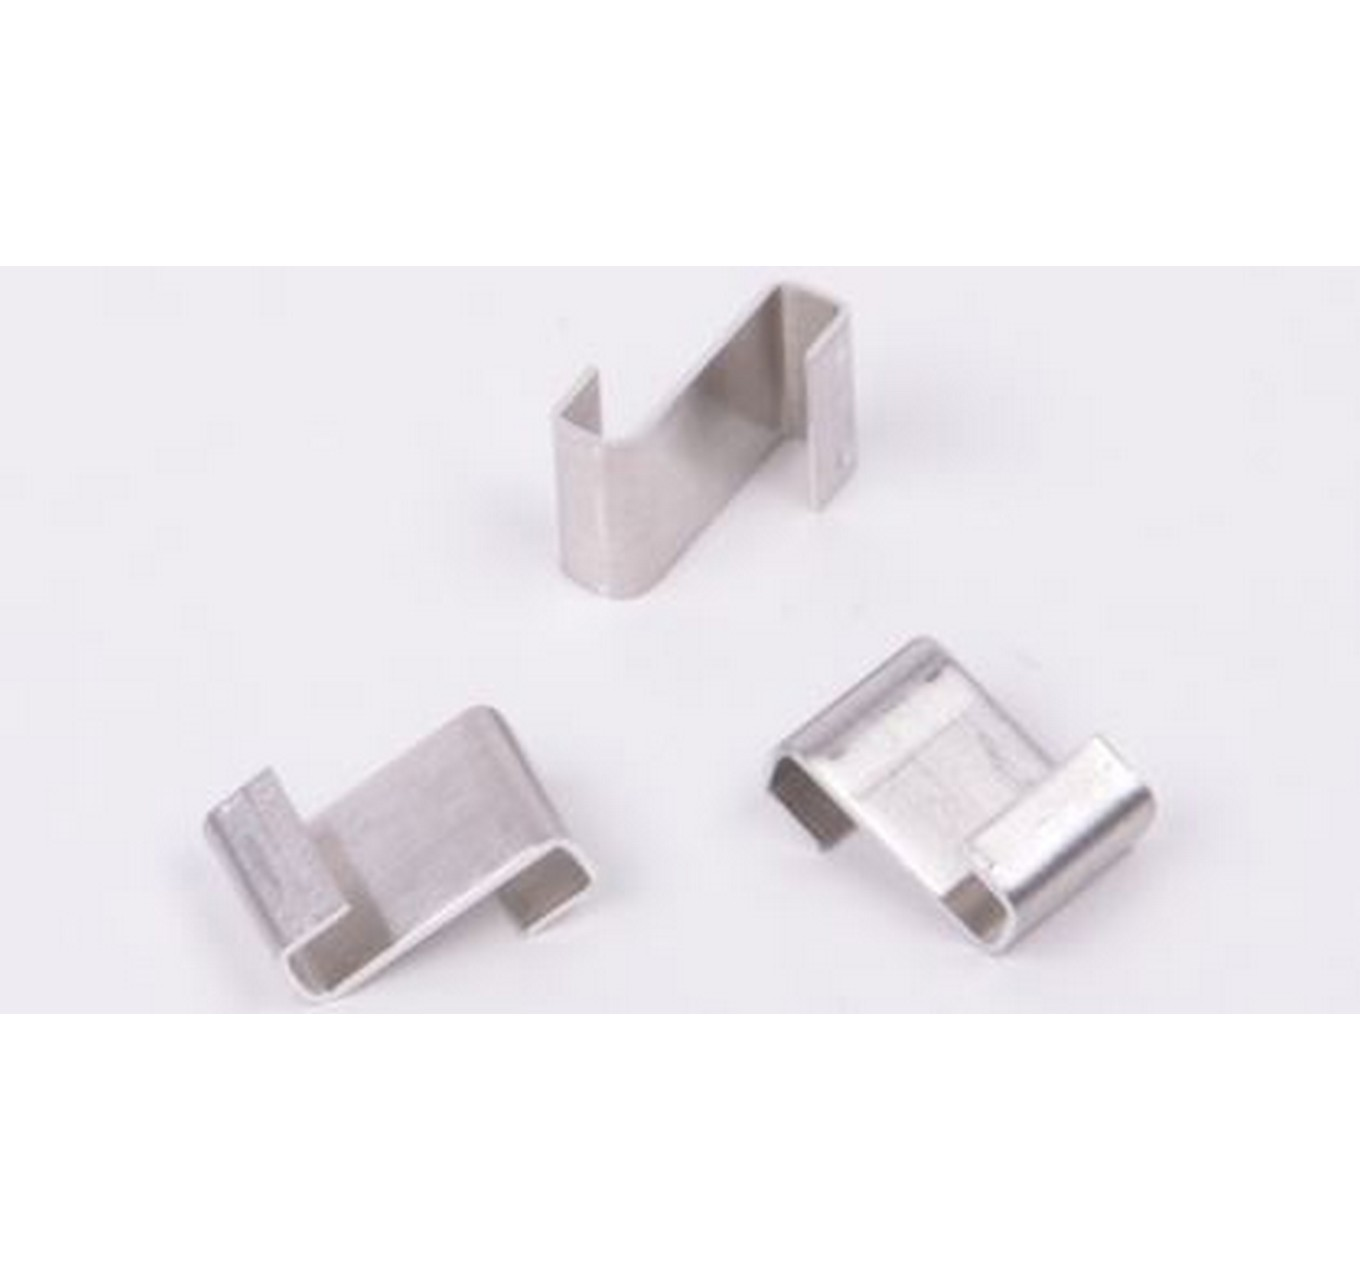 Stainless Steel Lap Clips 50pk